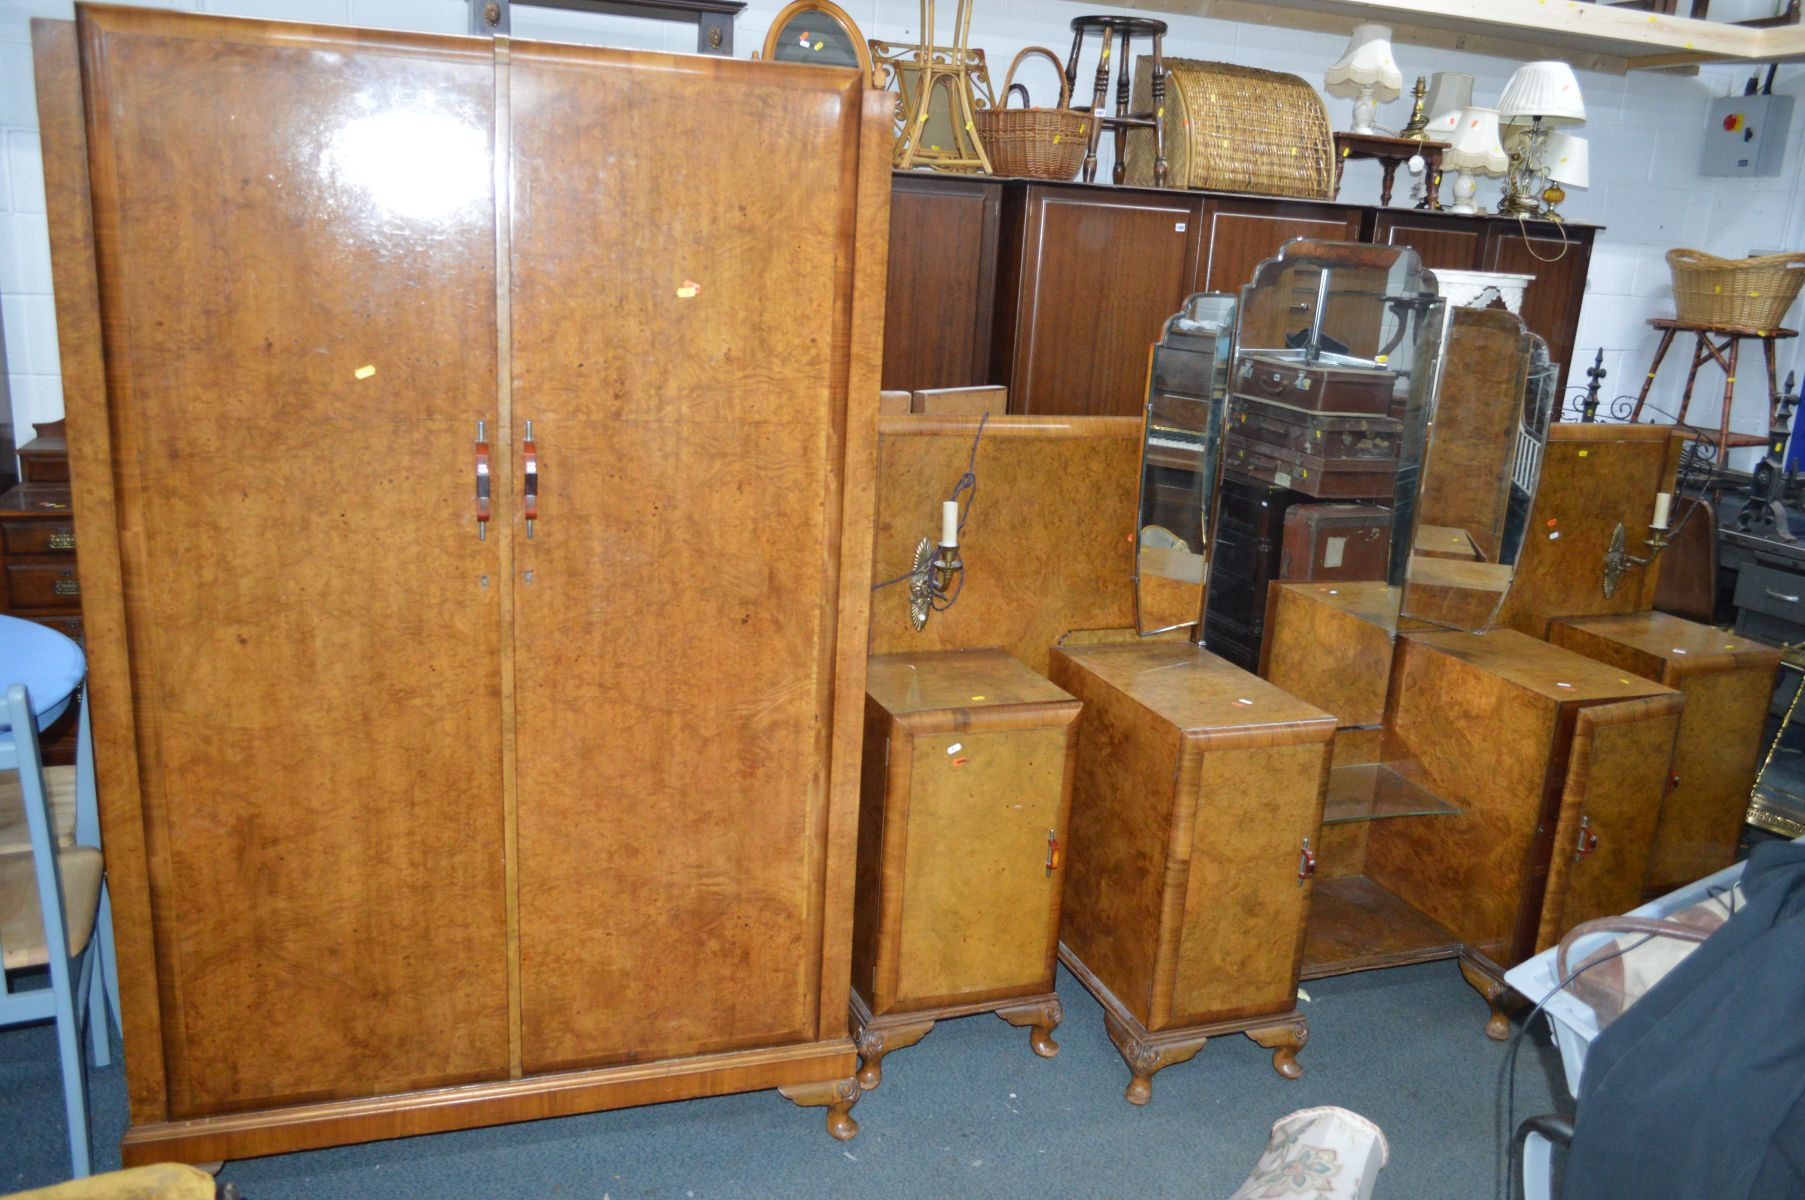 Lot 1413 - AN EARLY TO MID 20TH CENTURY ART DECO WALNUT FOUR PIECE BEDROOM SUITE, comprising a triple door